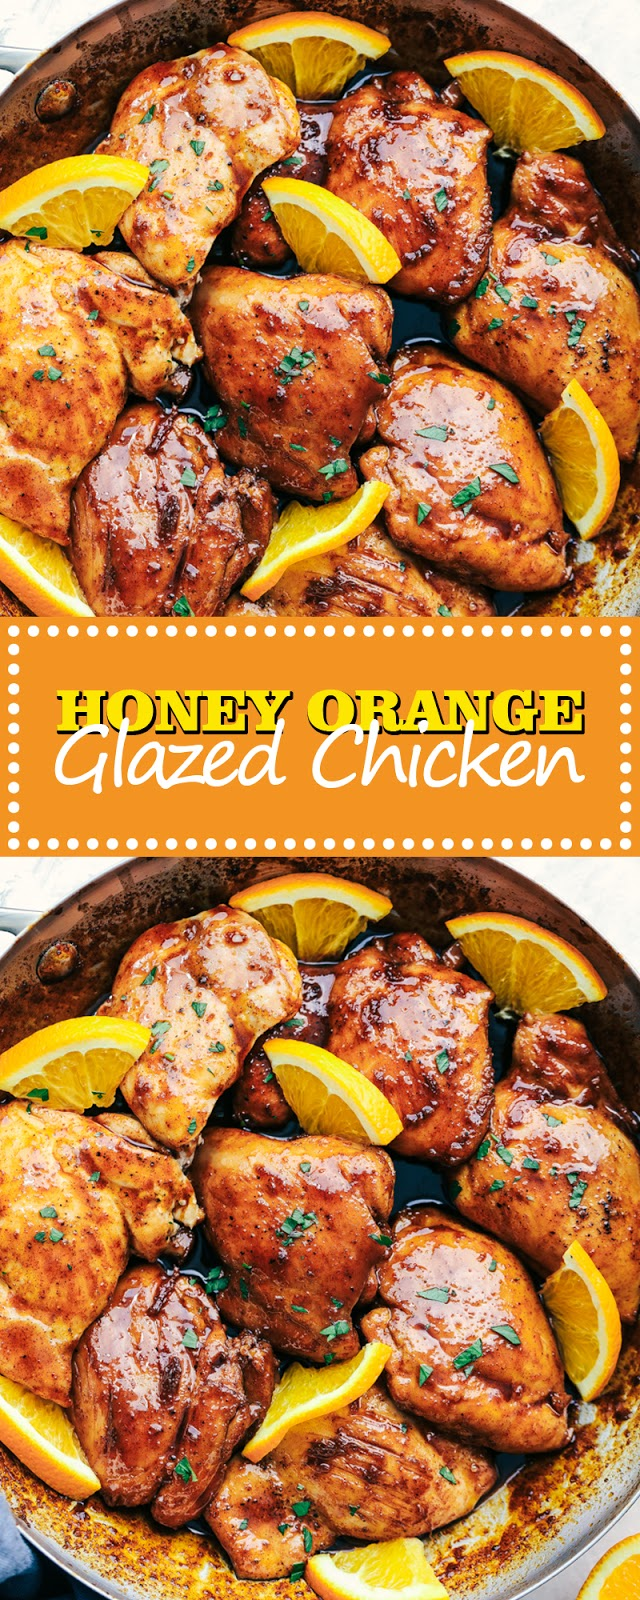 HONEY ORANGE GLAZED CHICKEN